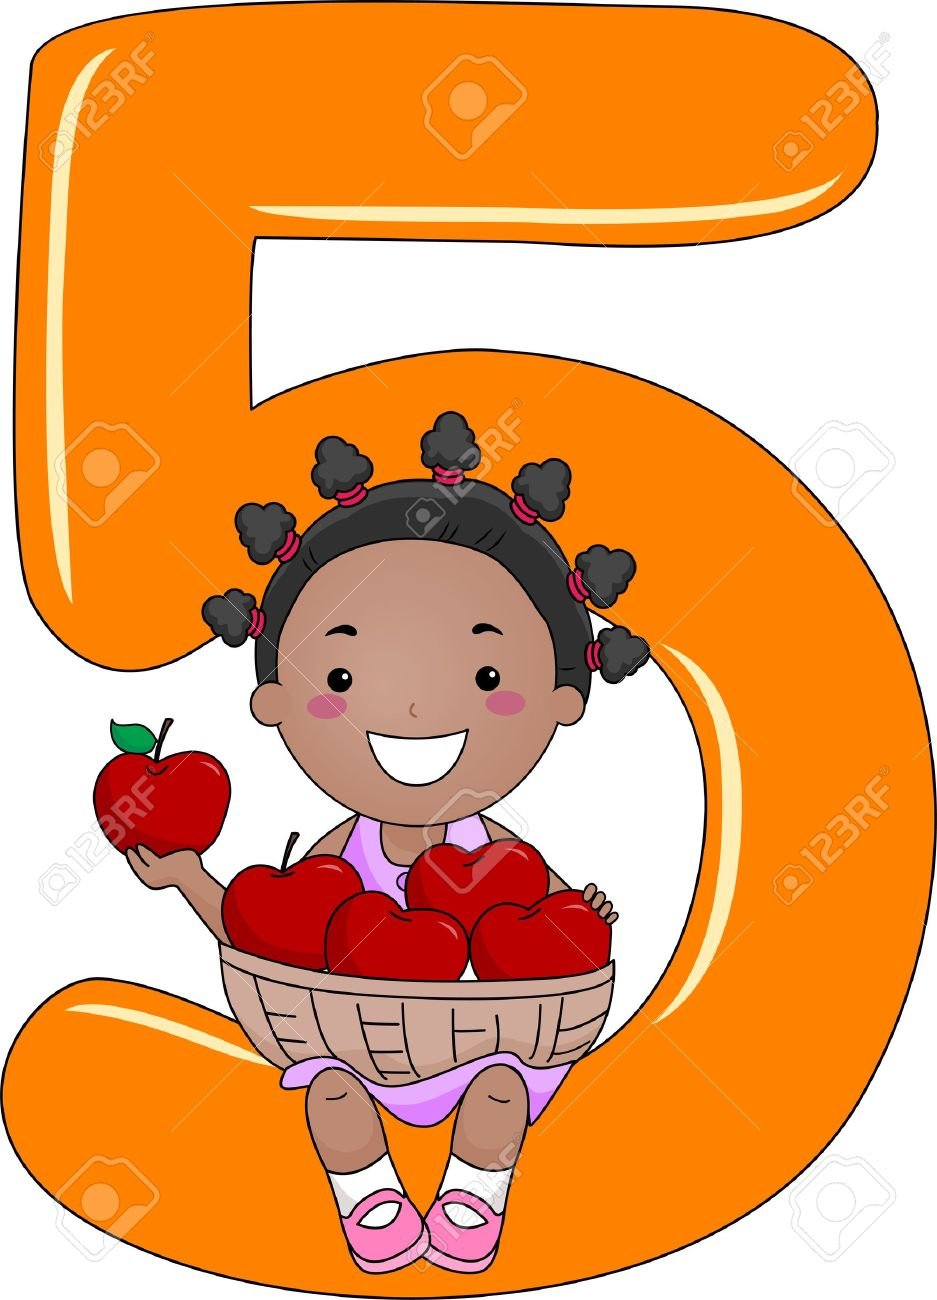 Kids with numbers clipart free stock Numbers clipart kids - ClipartFest free stock